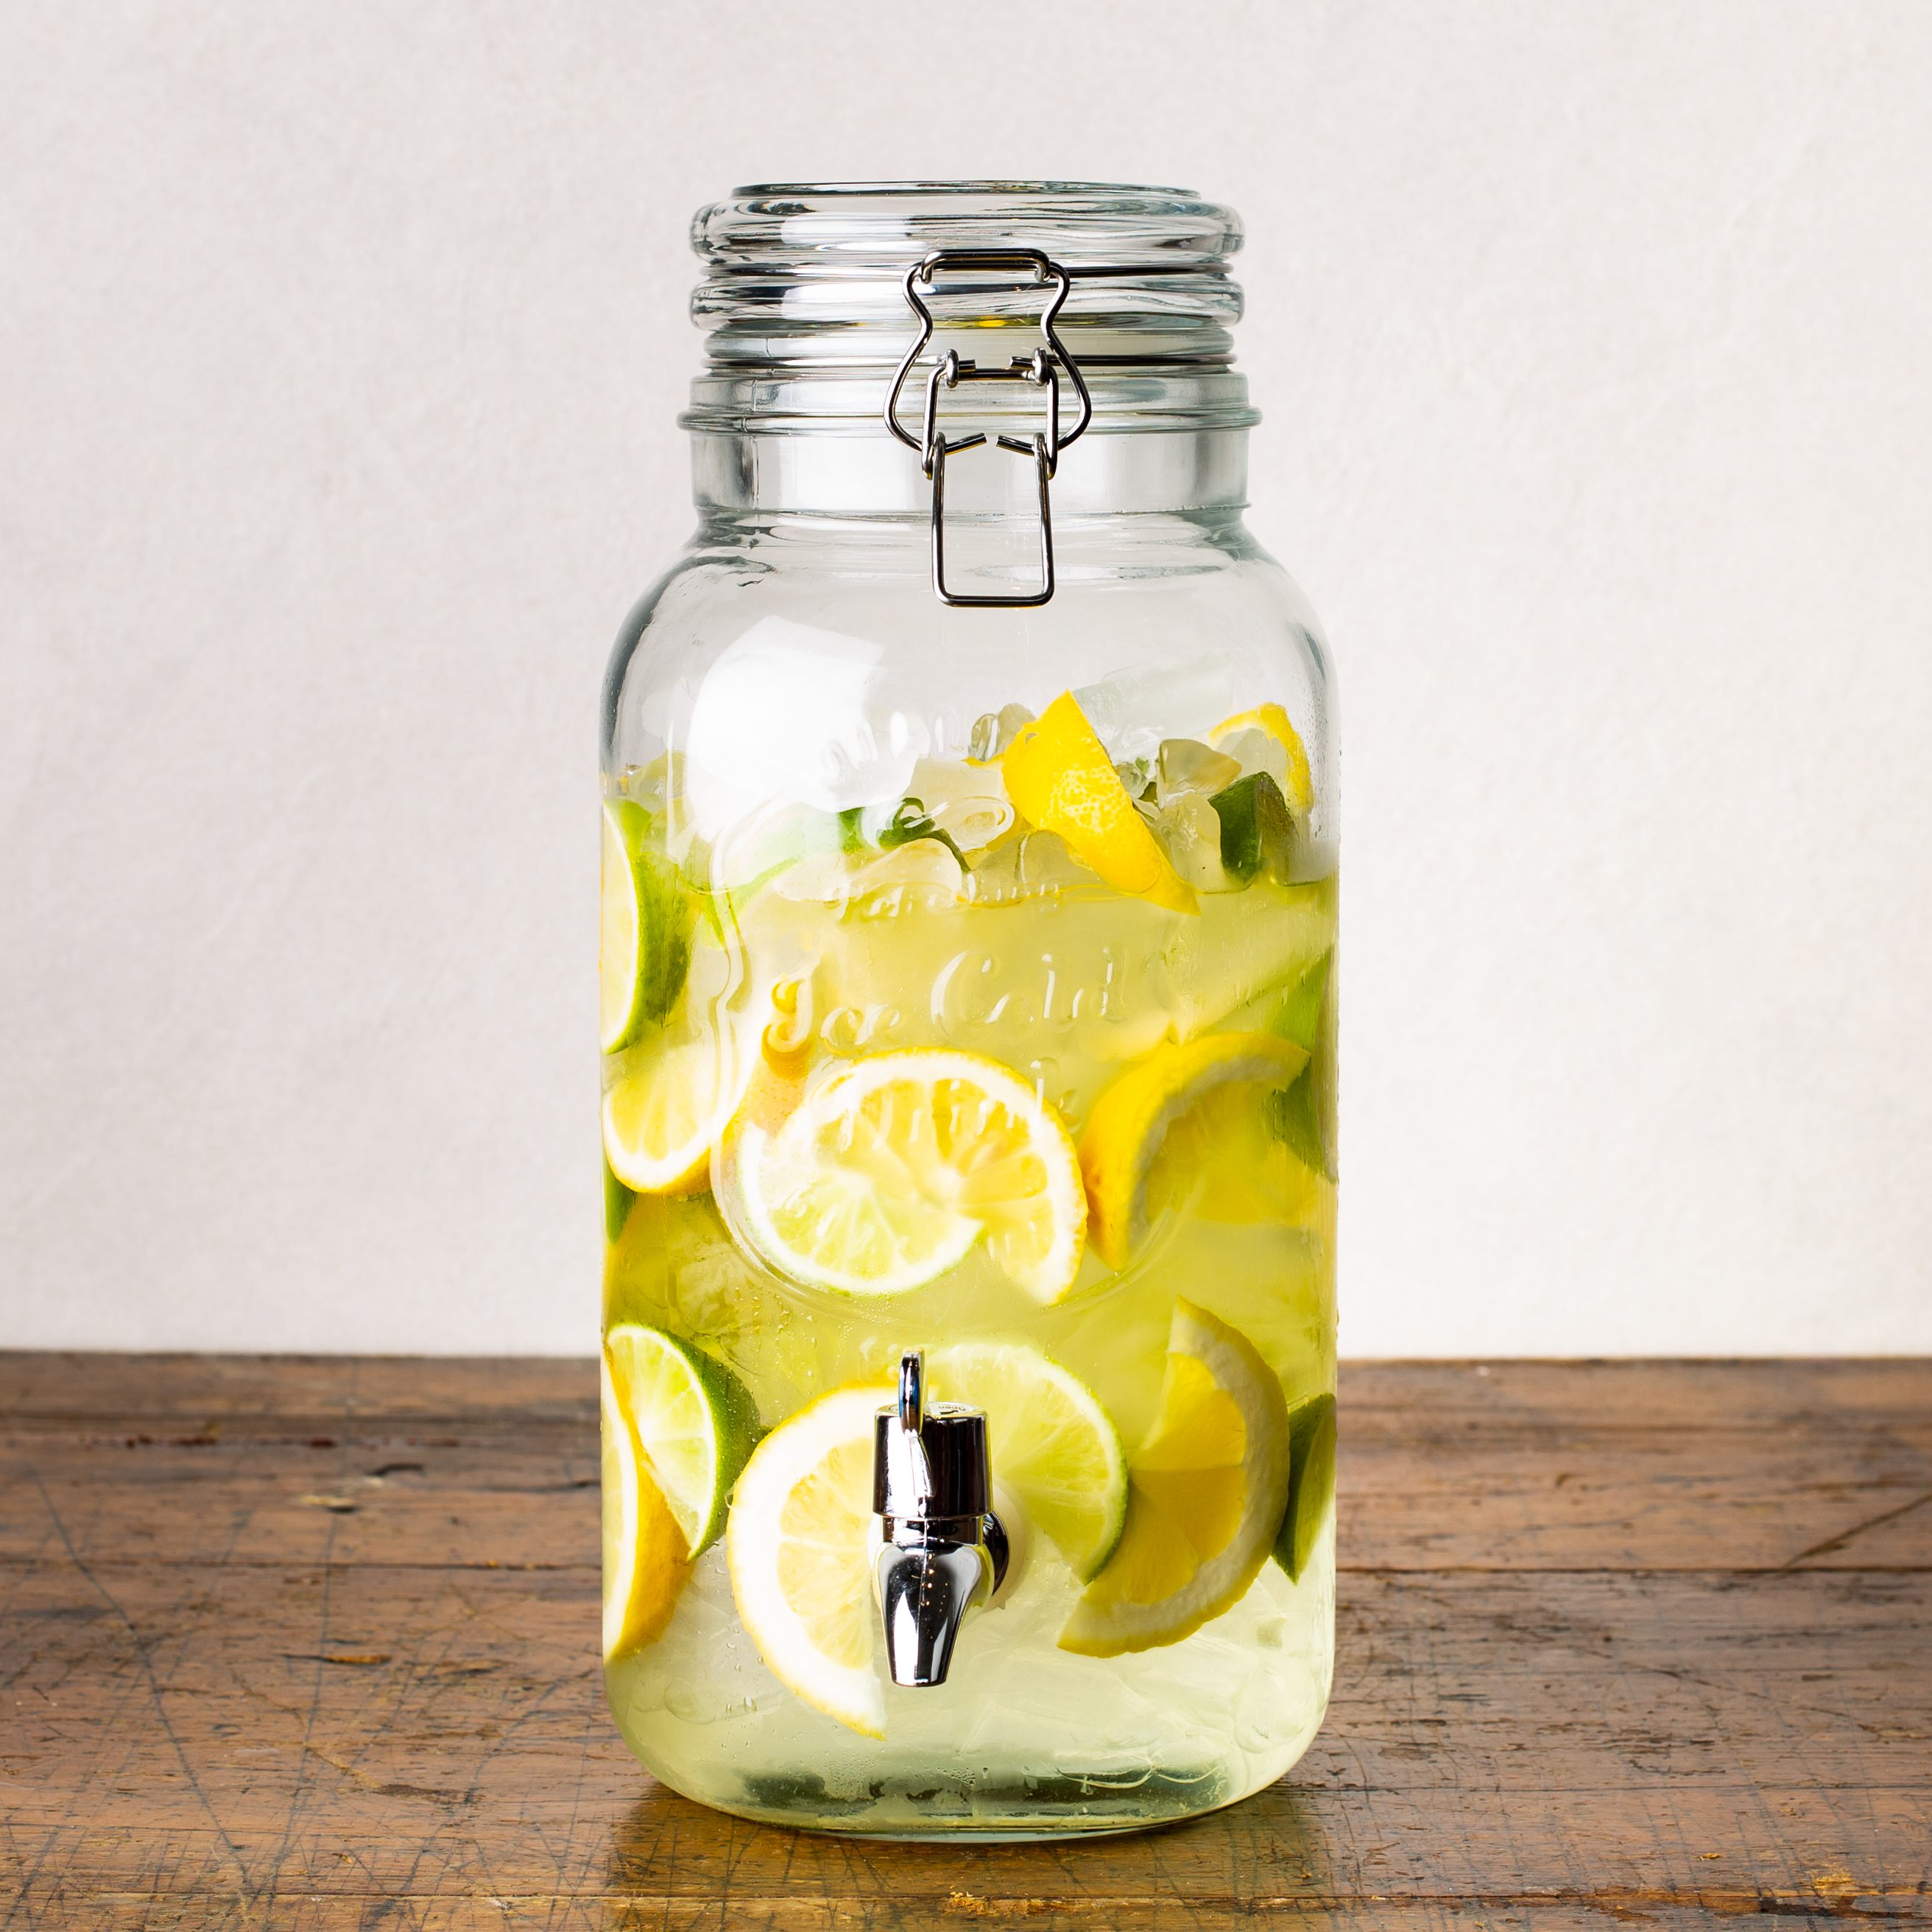 glass beverage dispenser with ice, limes, and lemons